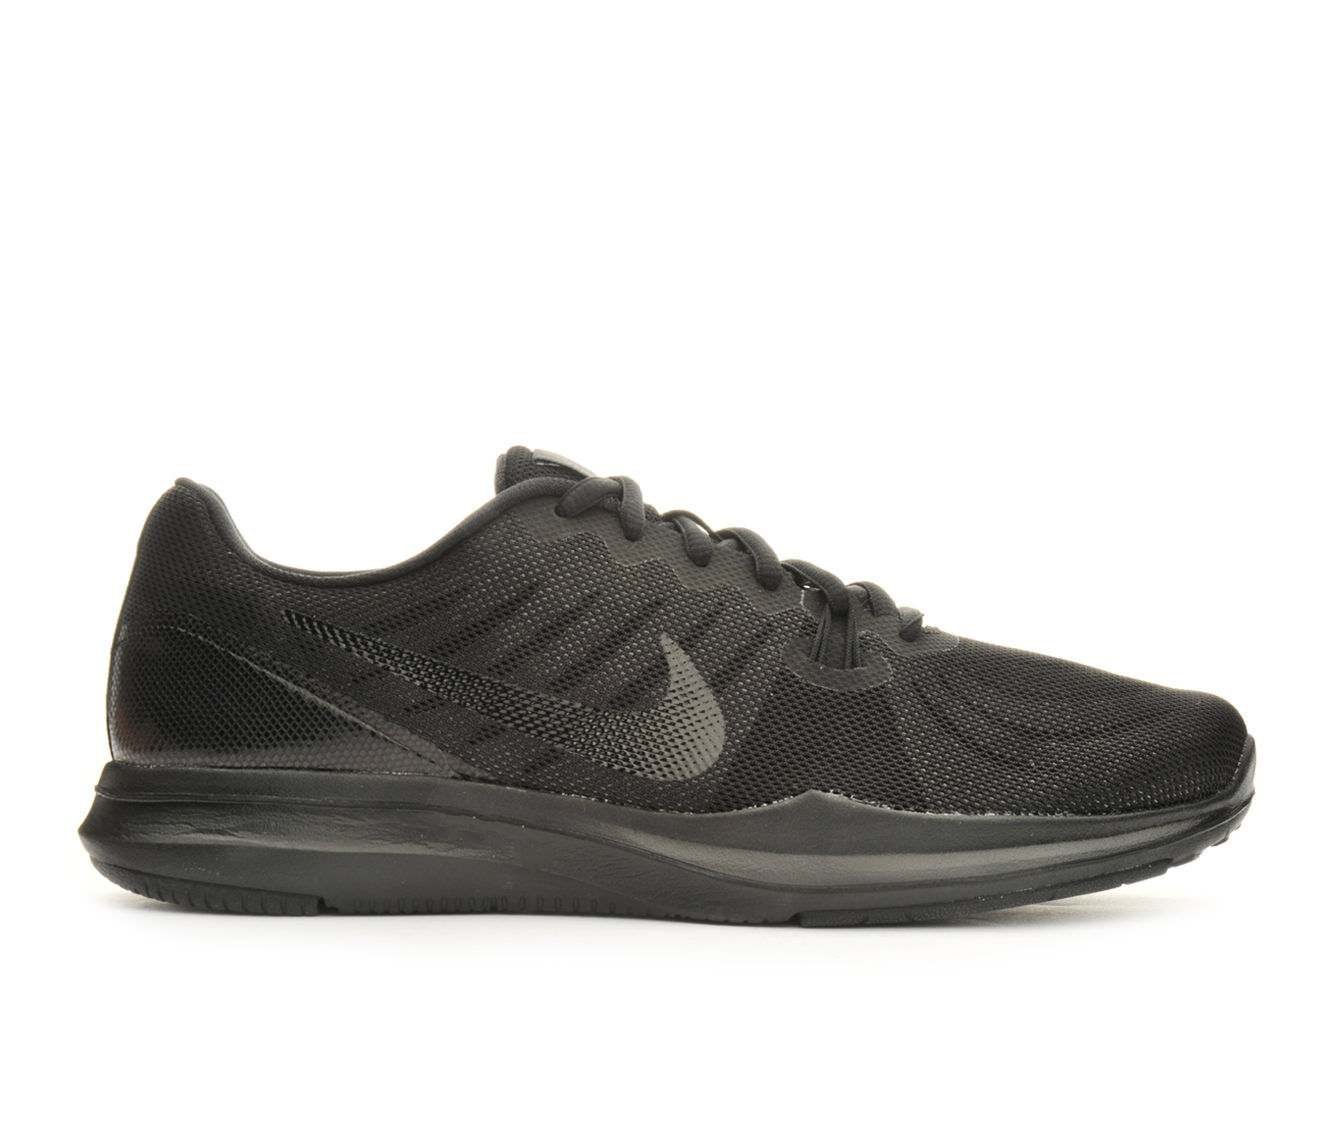 cc1828a8a8d28 ... coupon code for womens nike in season tr 7 training shoes shoe carnival  3fbb4 0734b